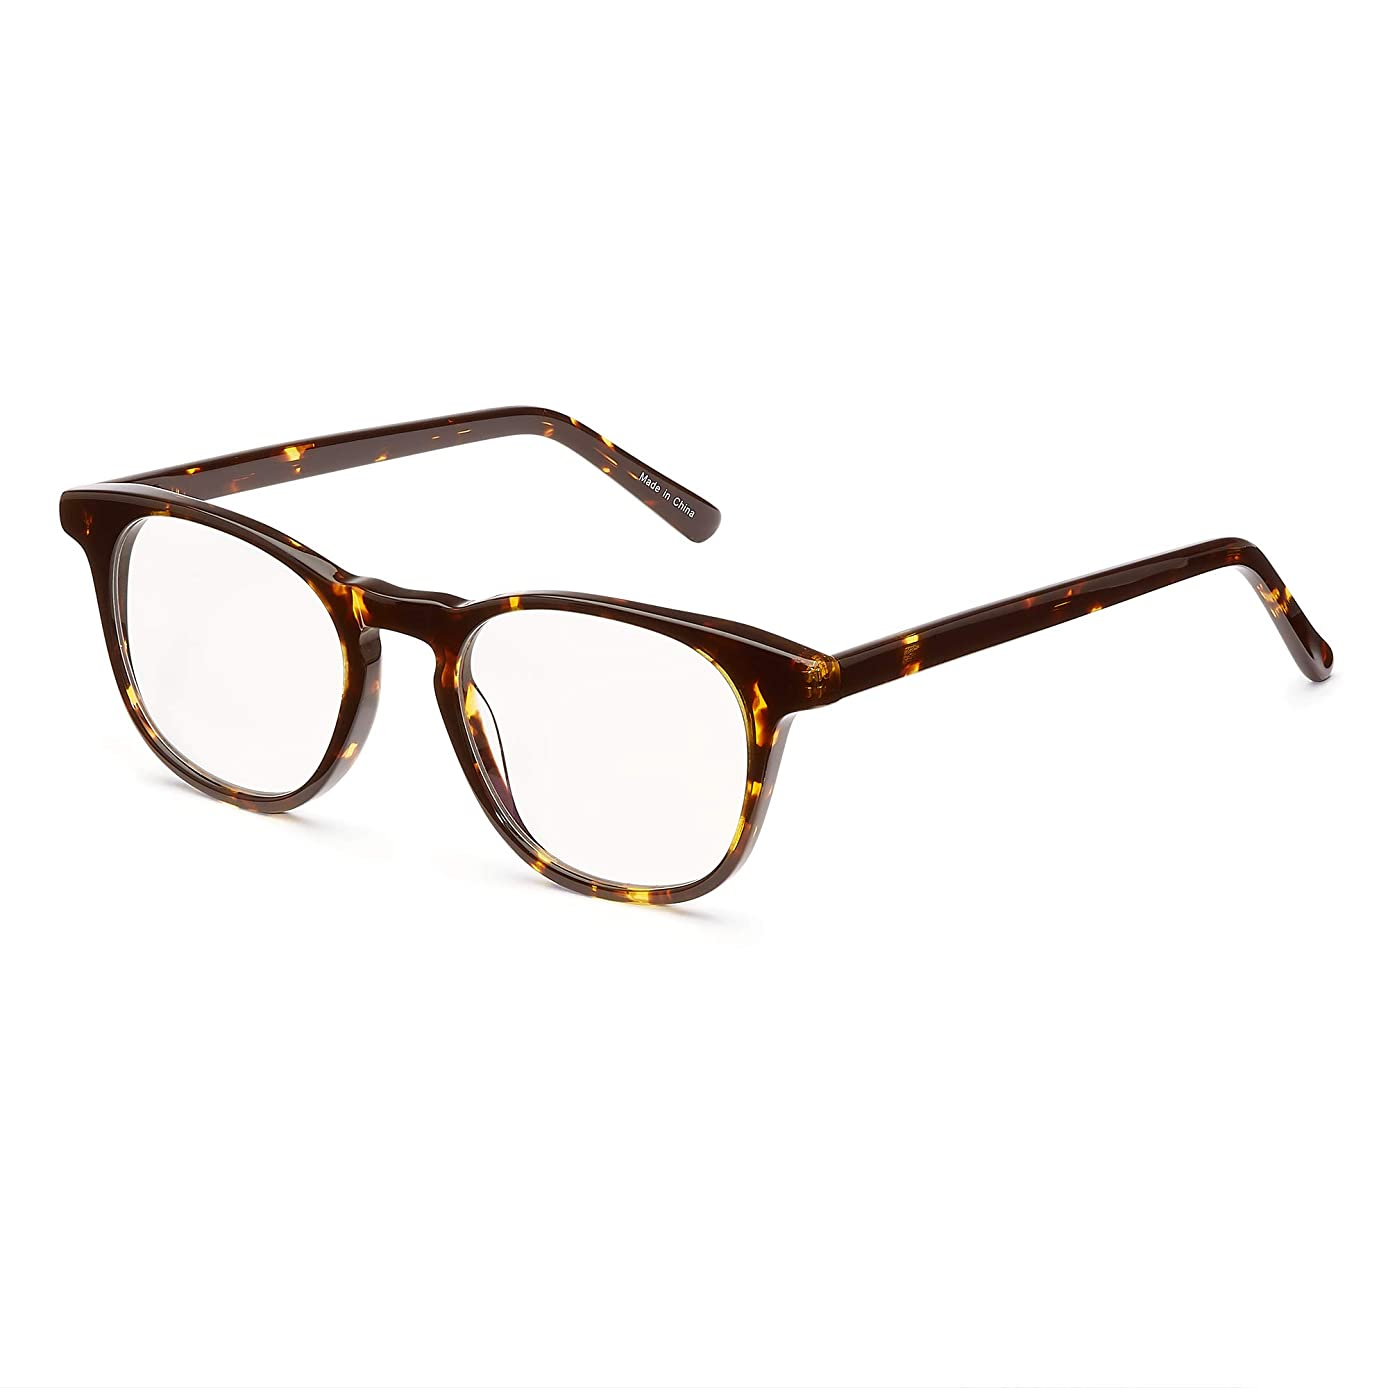 KPI Blue Light Blocking Glasses - Acetate Frame and Lenses - No Yellow or Blue Tint - Fashionable - Professional - (Tortoise)